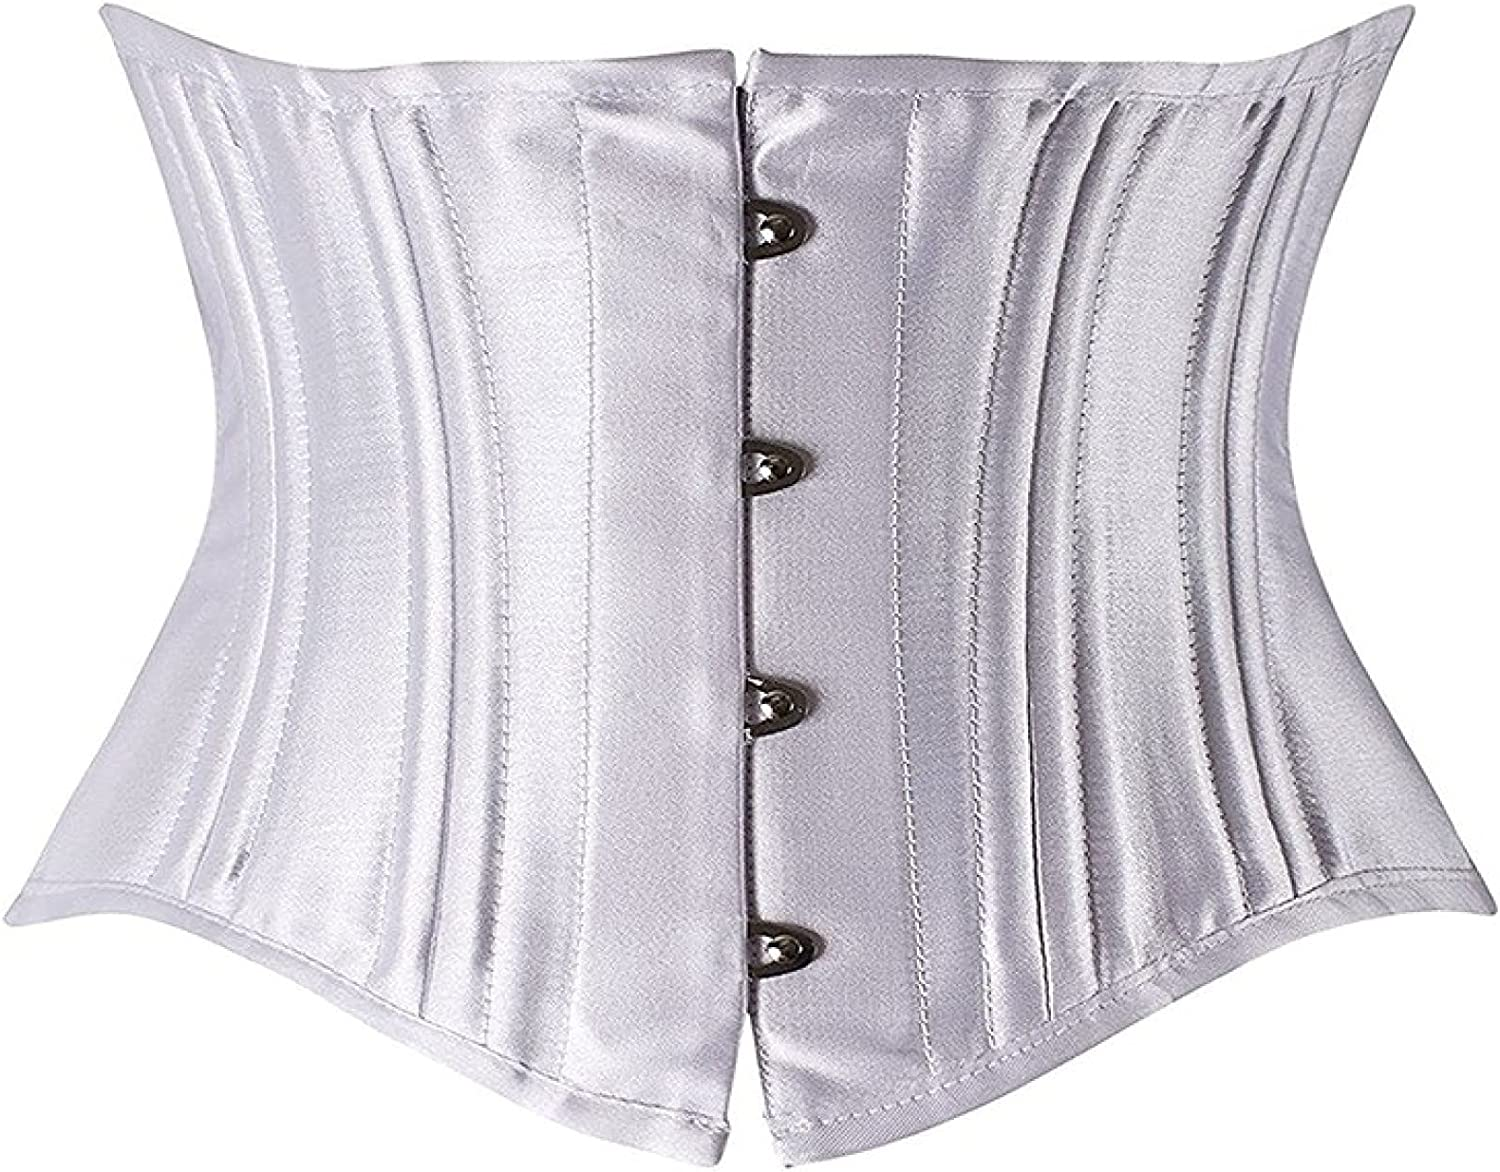 Underbust Corsets for Women's Lace Our shop OFFers the best service Up Sho Top Cincher Back Waist Max 52% OFF